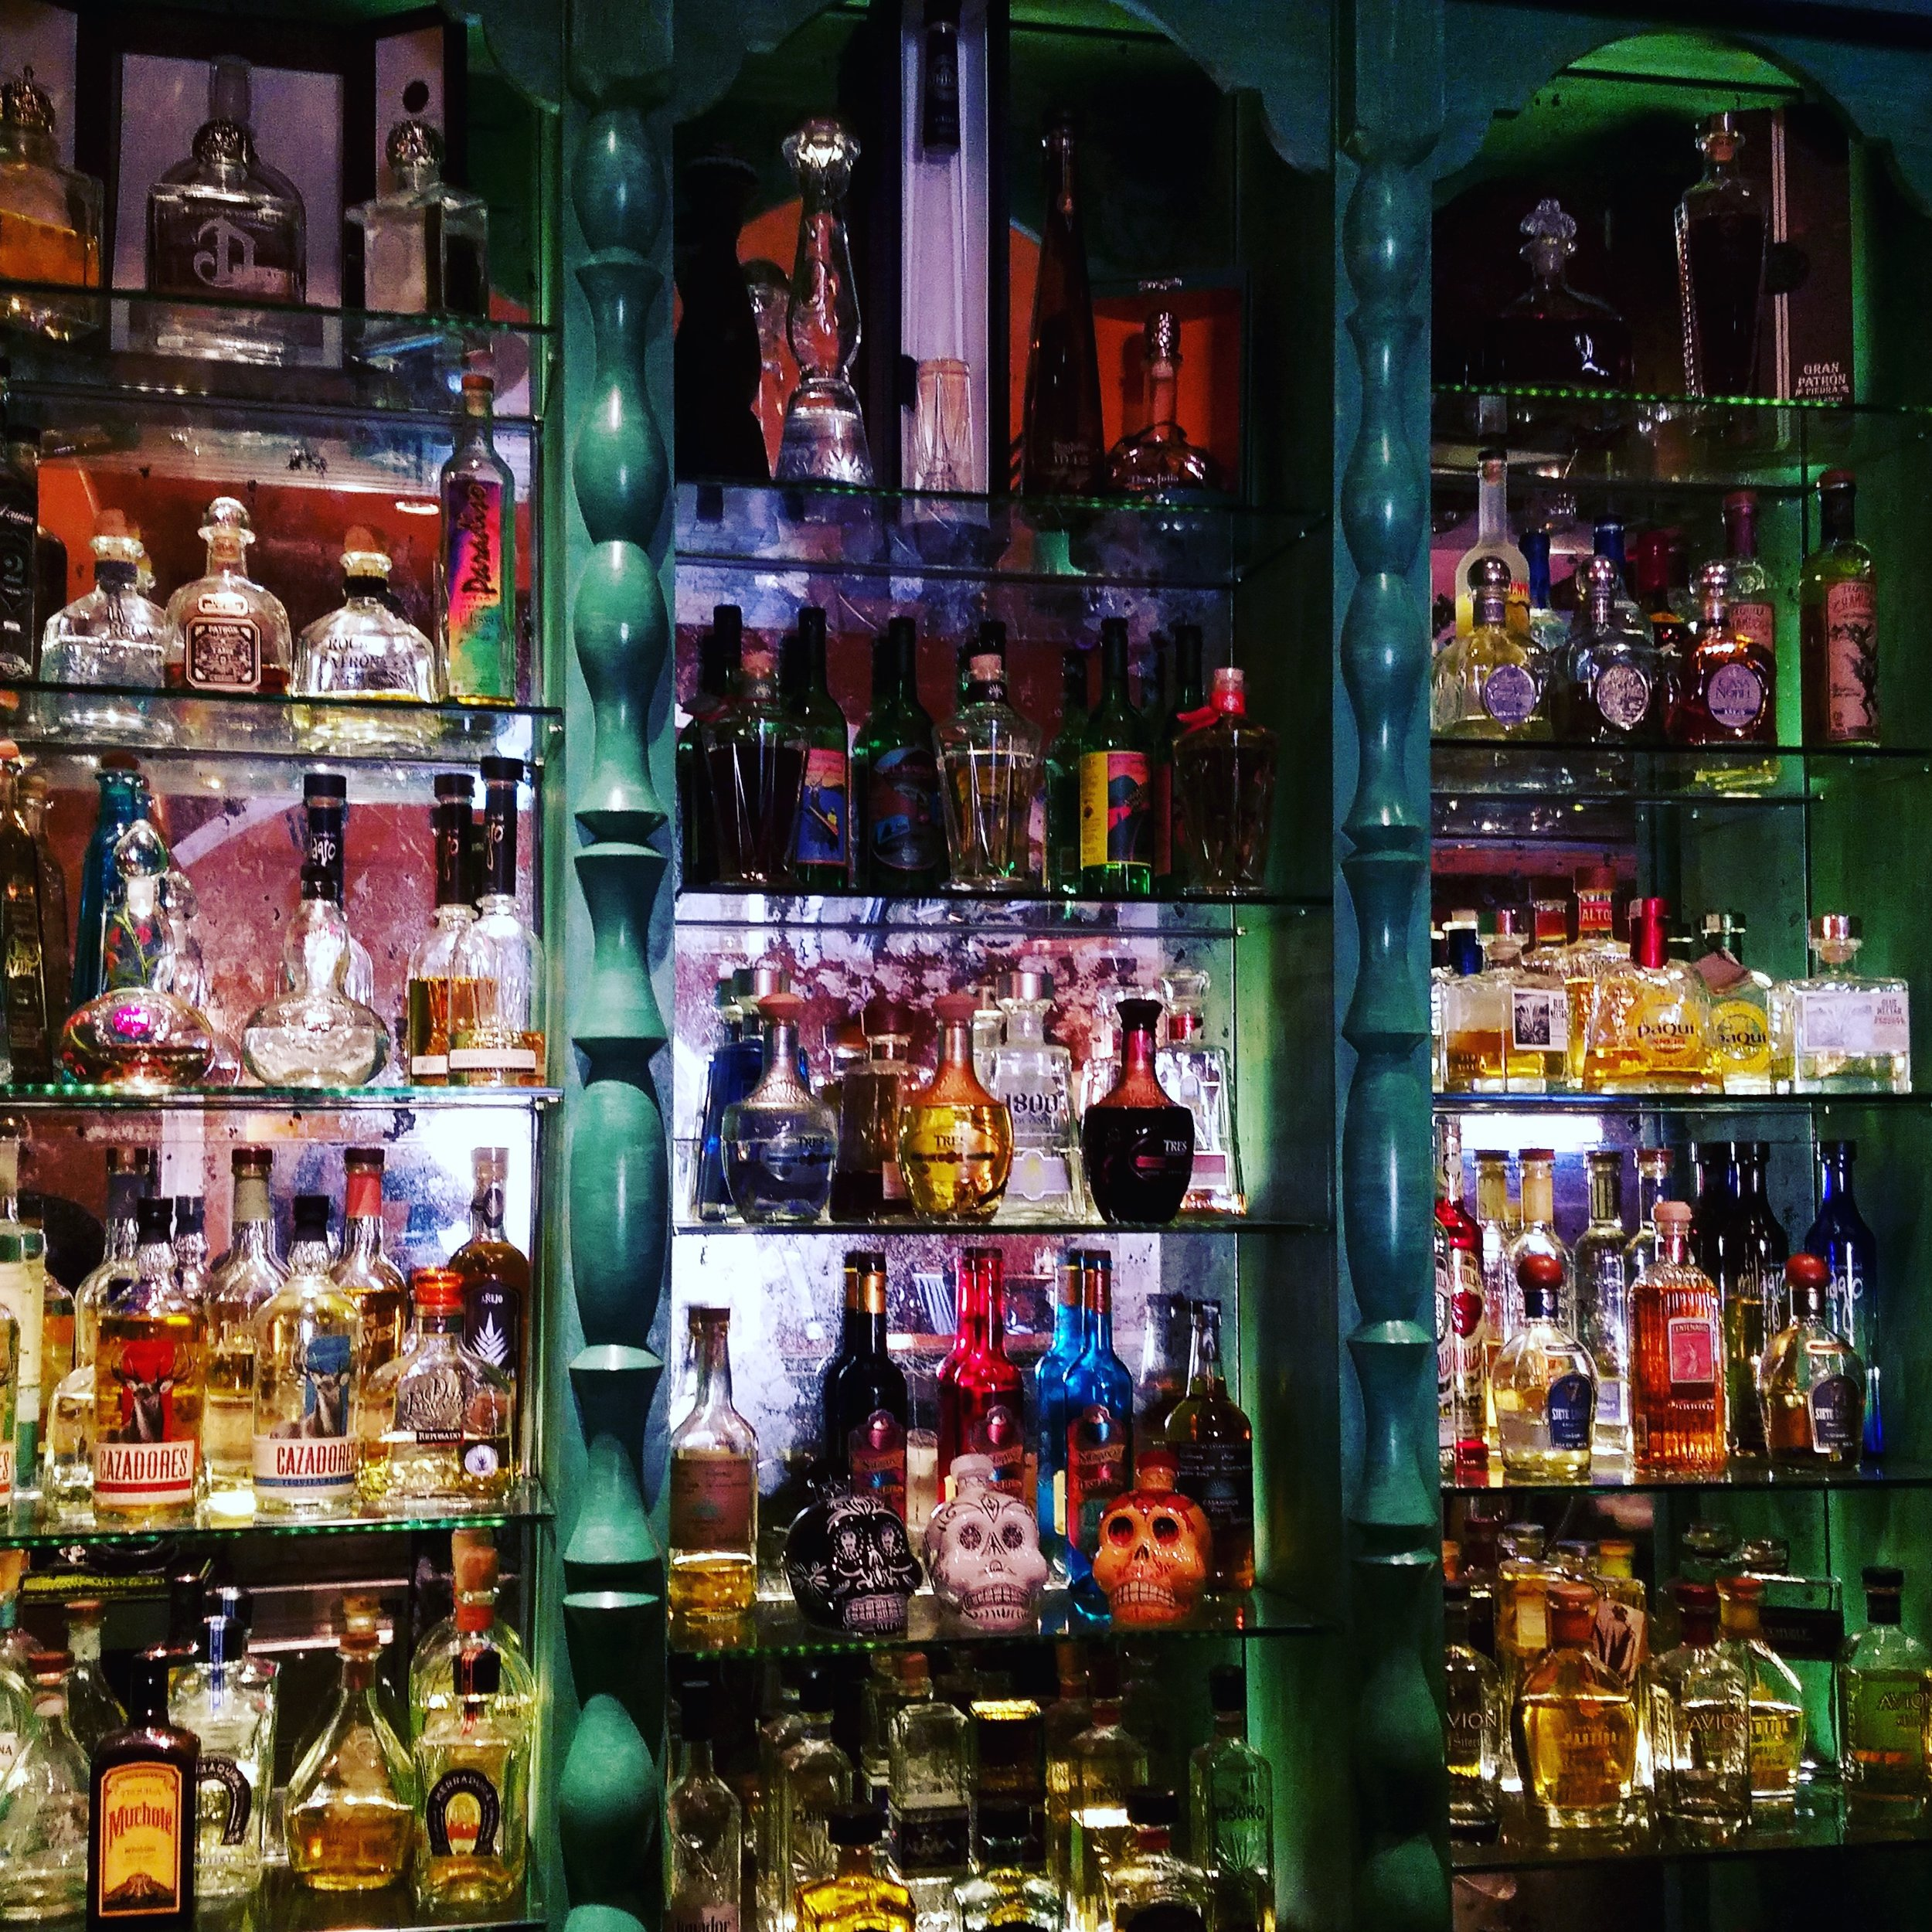 Behind the bar at Garduno's in Old Town Albuquerque